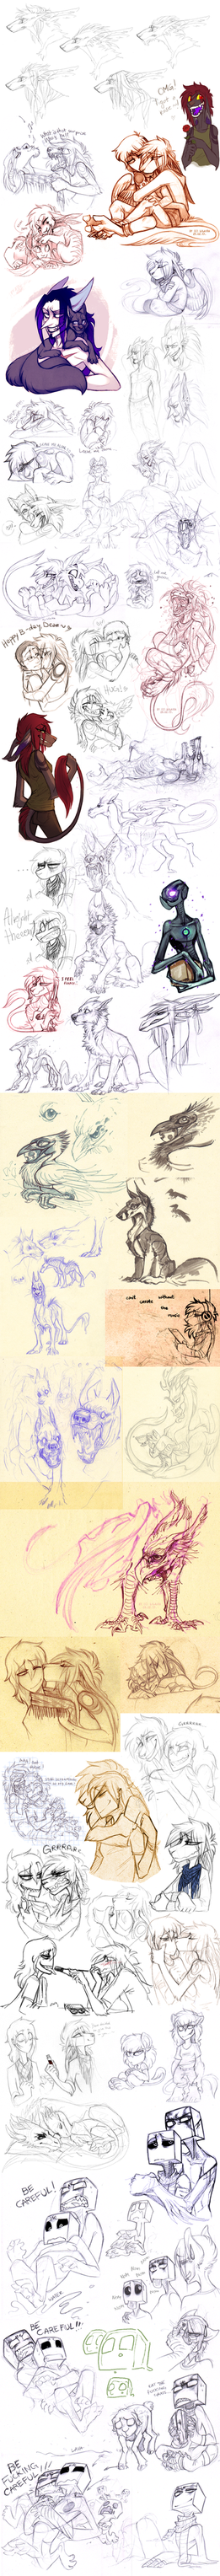 Sketch dump 47 by LiLaiRa